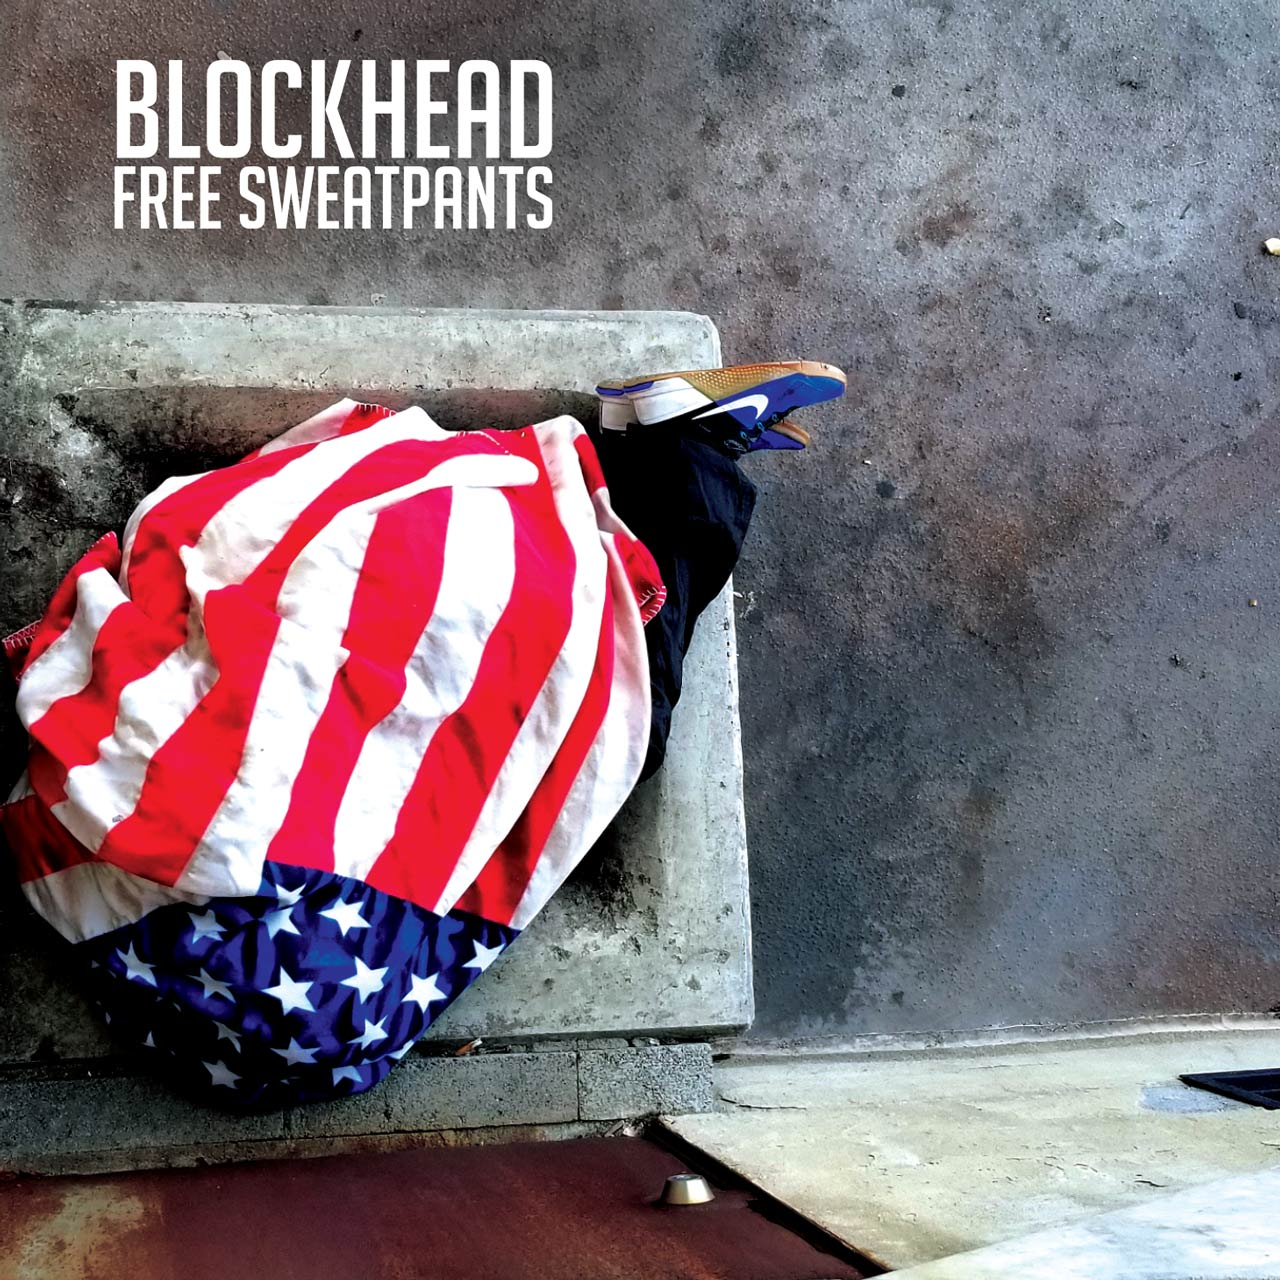 blockhead_sweatpants_CD-COVER_1280.jpg